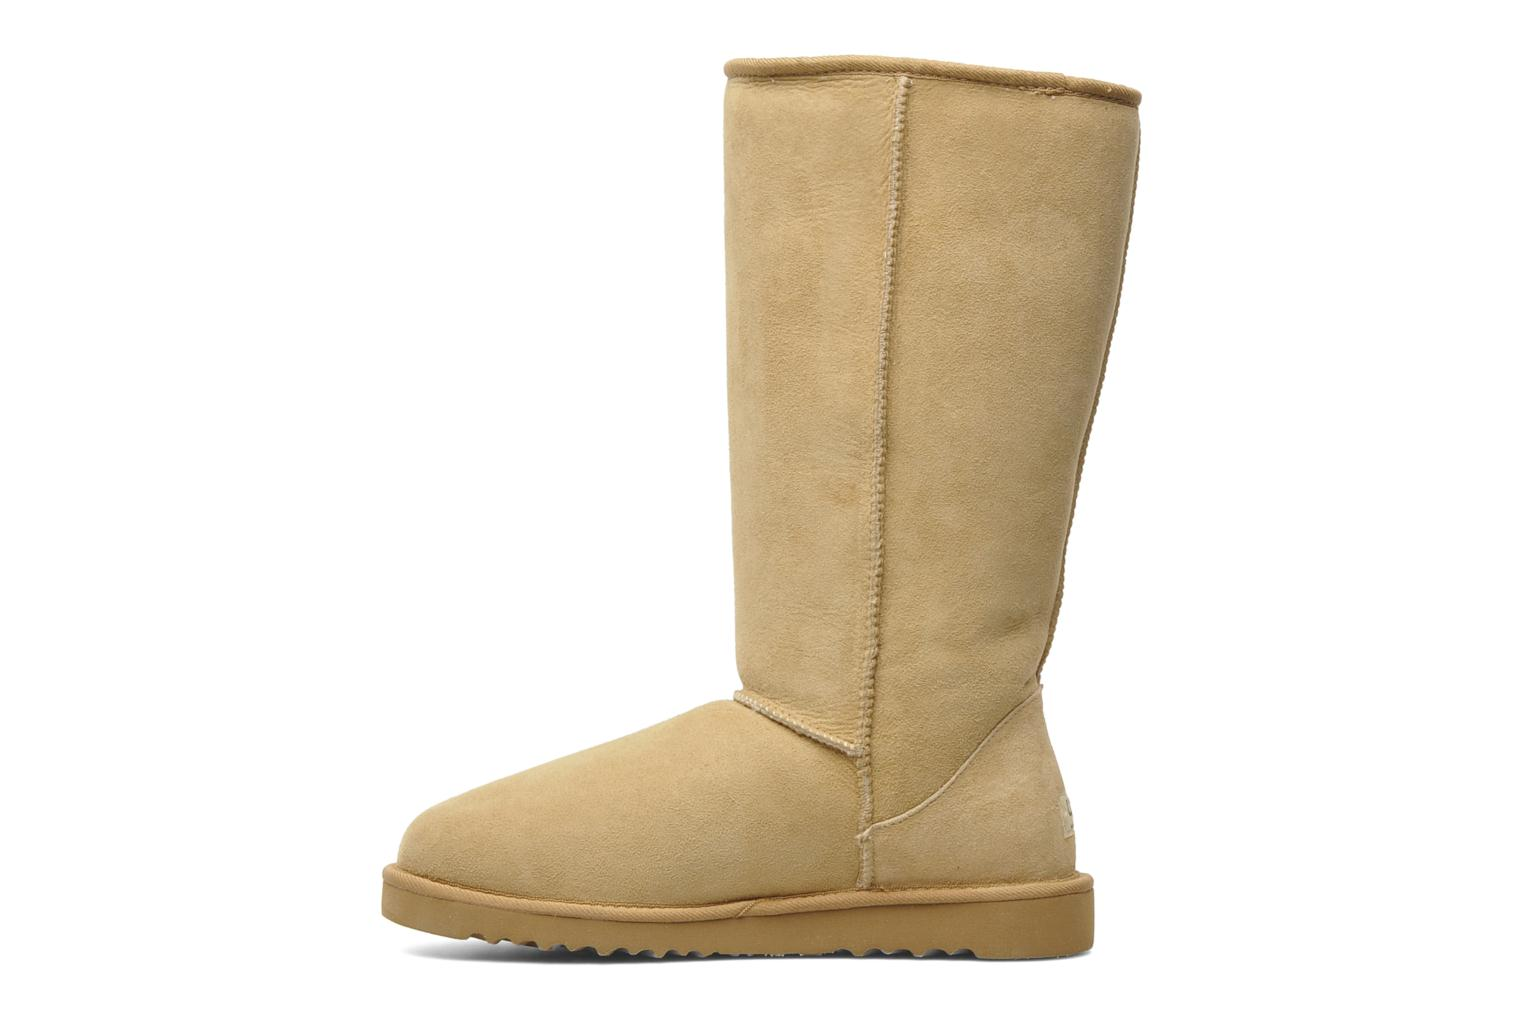 Bottines et boots UGG Classic Tall Beige vue face